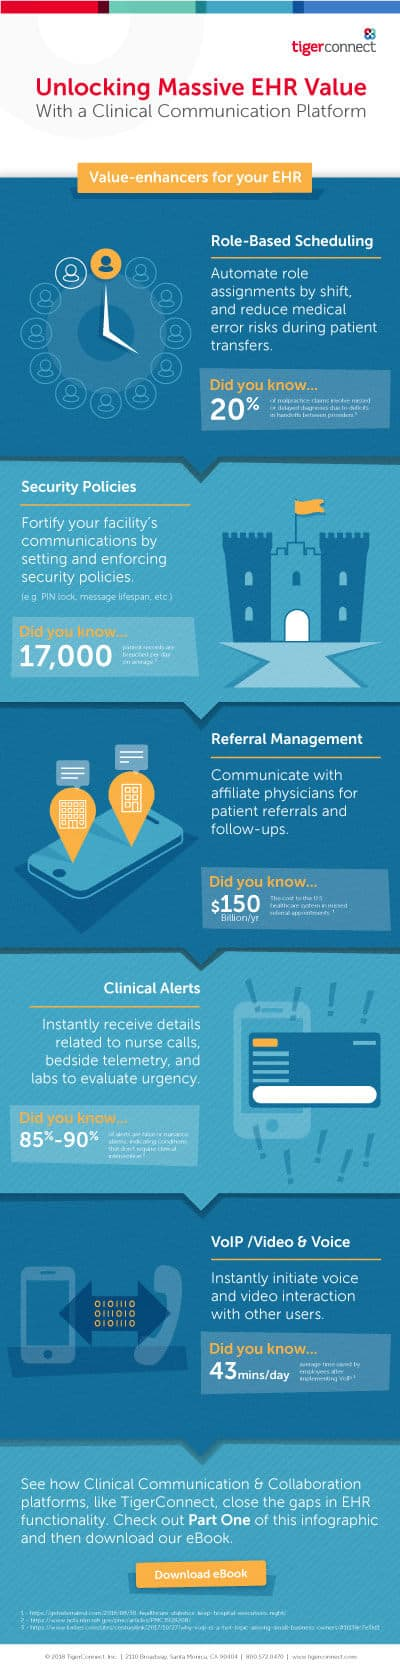 Unlocking Massive EHR Value with a Clinical Communication Platform Preview Image